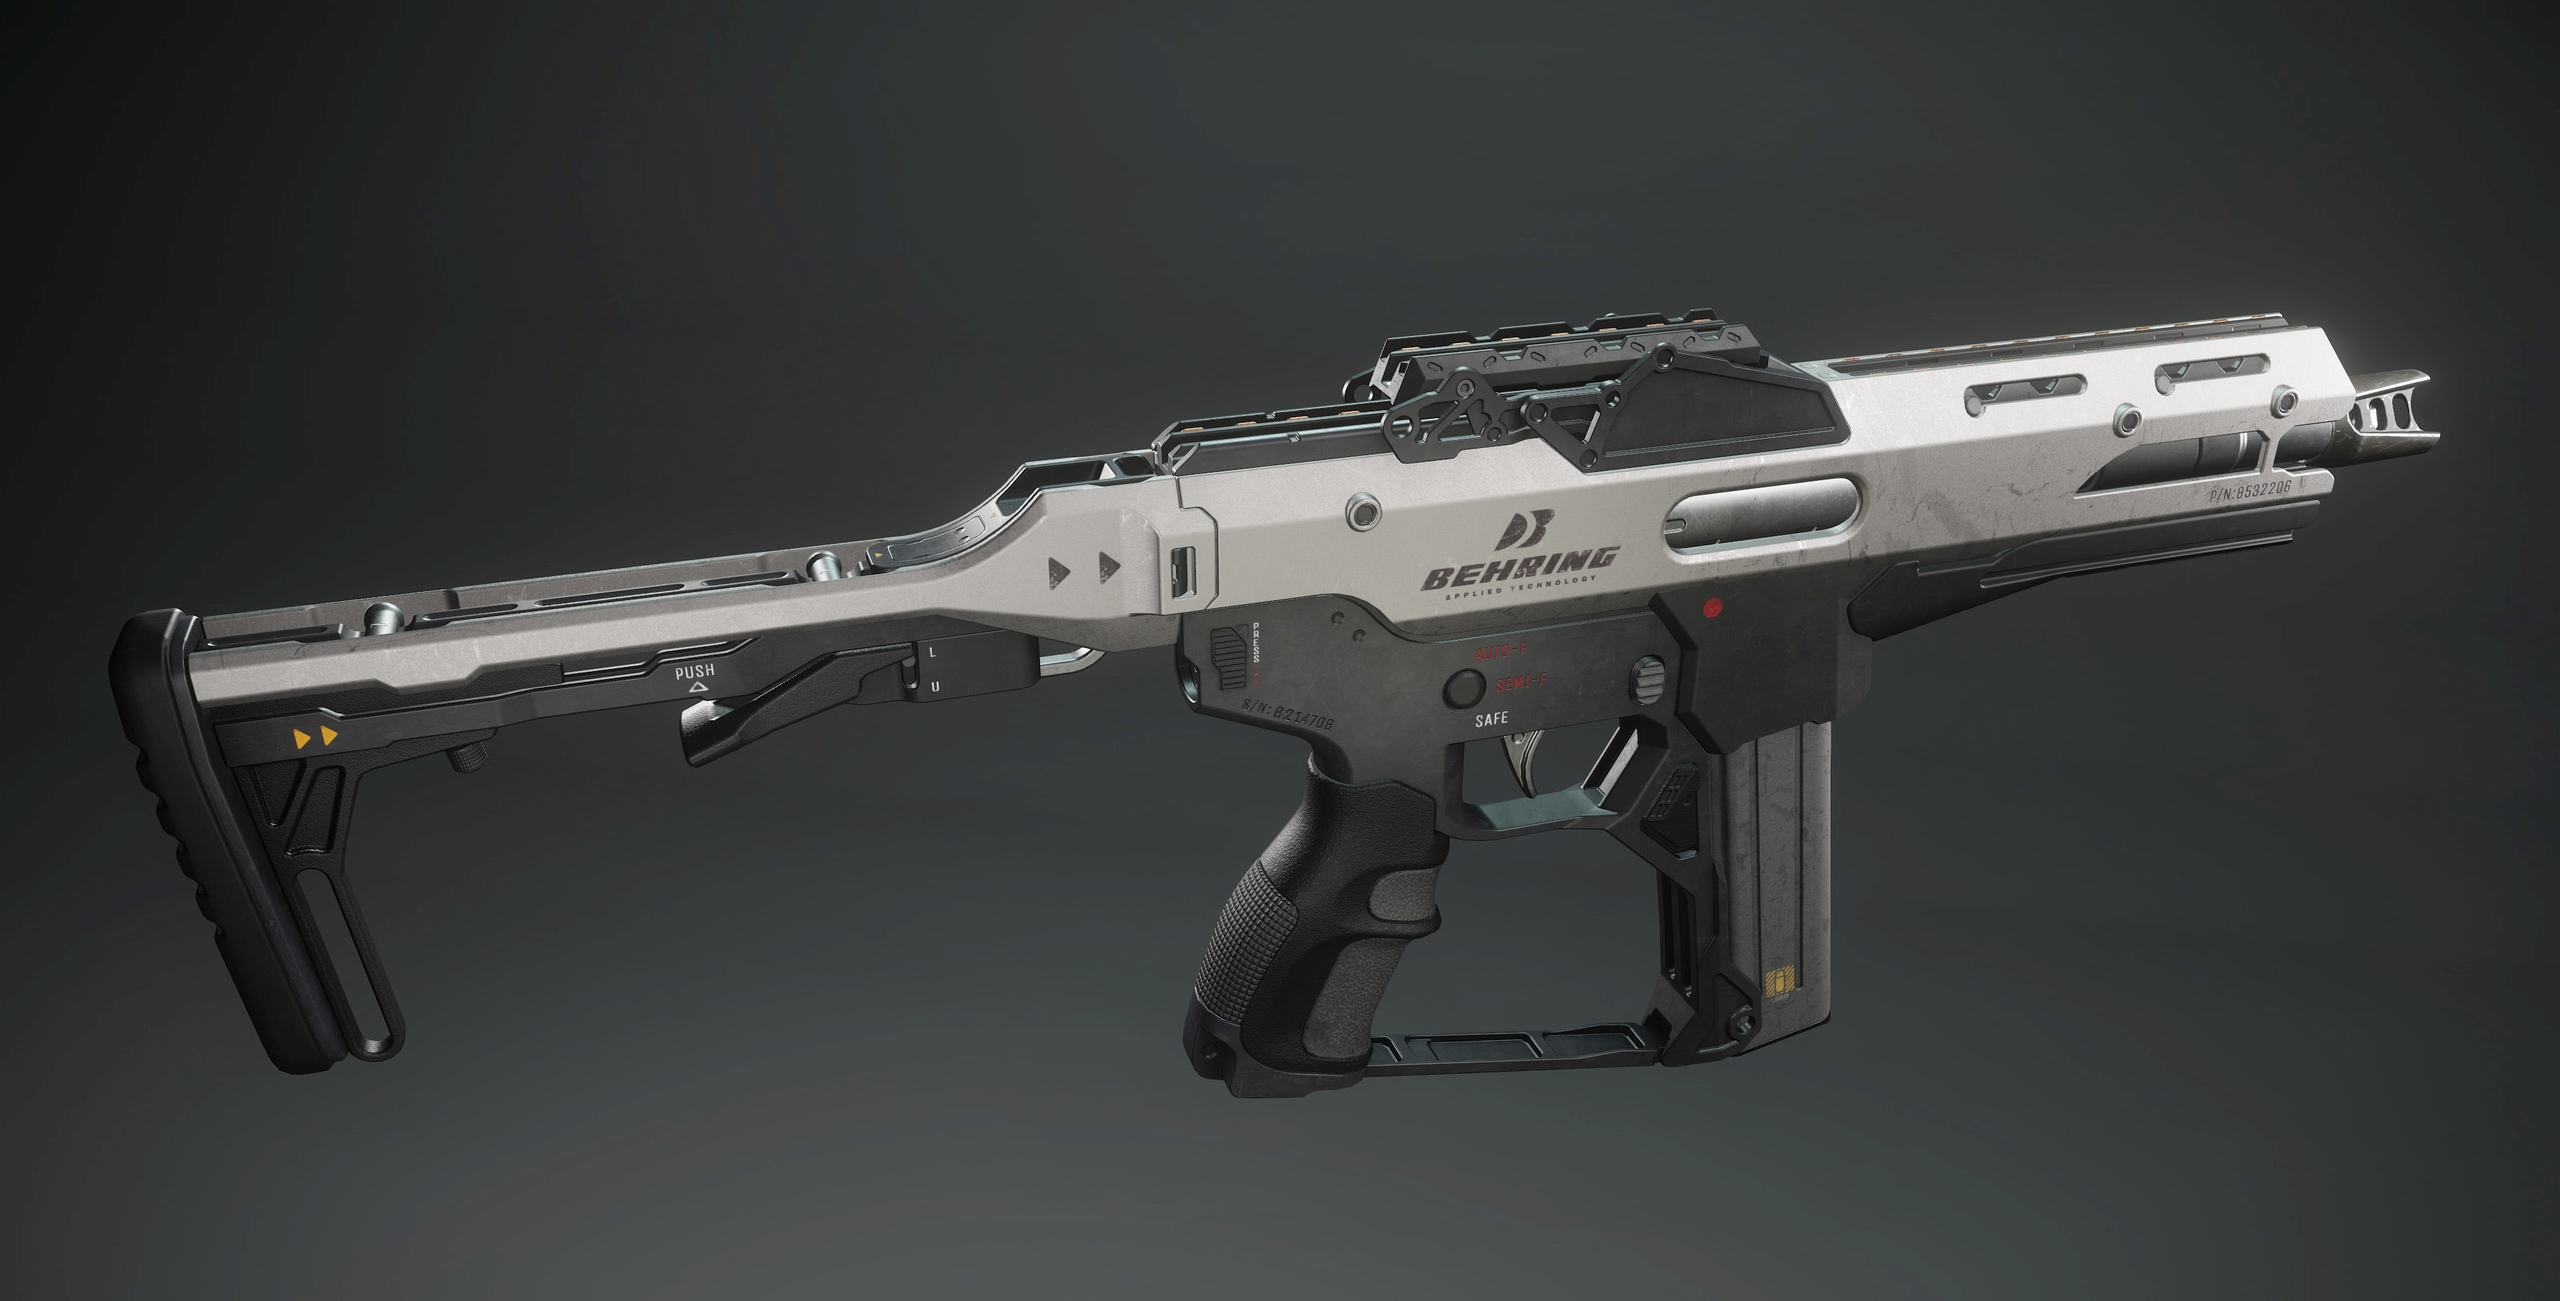 StarCitizen-Preview BEHR P8SC 01-pcgh.jpg